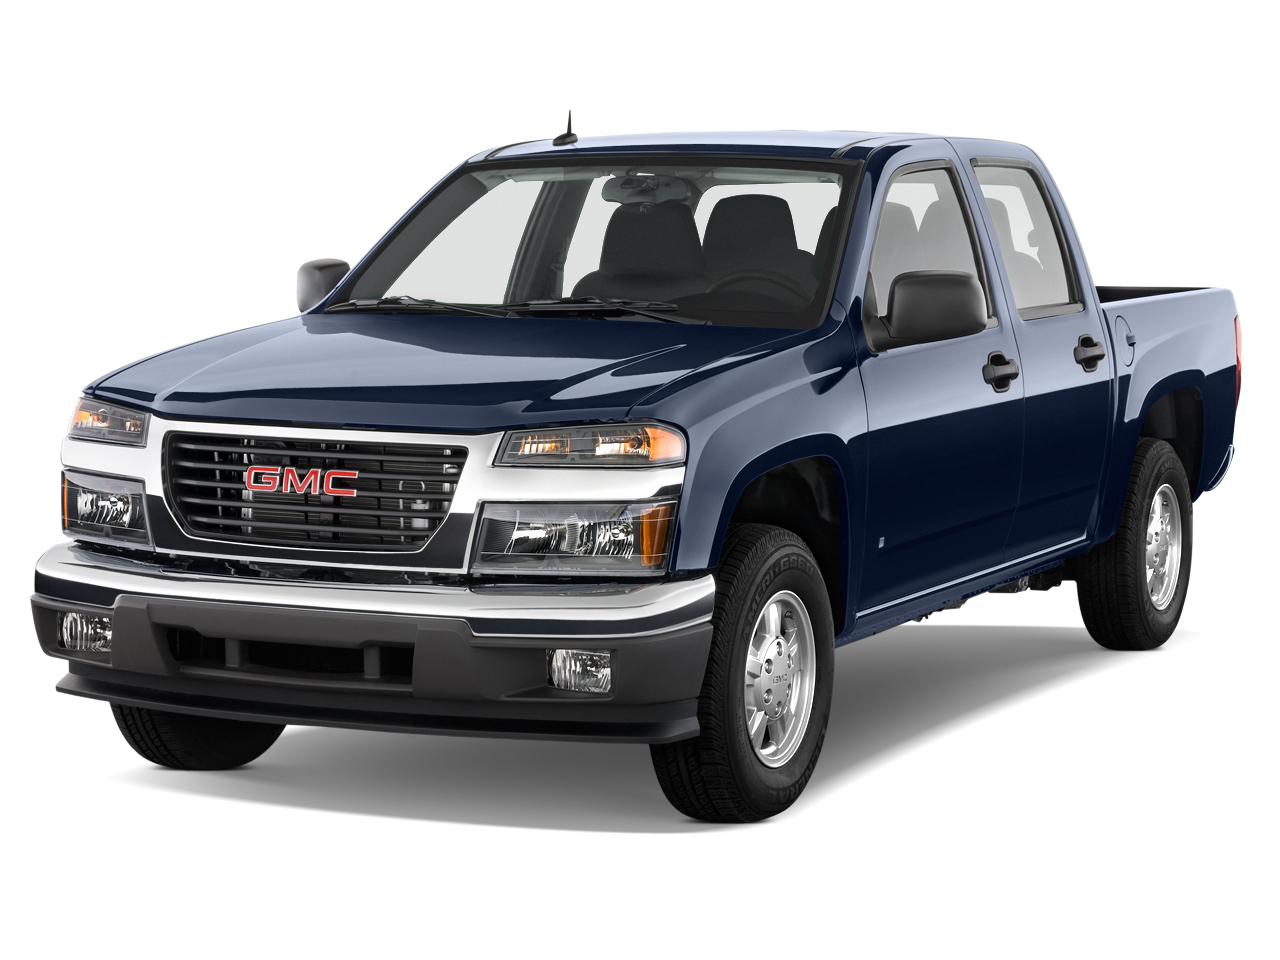 2010 gmc canyon versus 2010 nissan frontier. Black Bedroom Furniture Sets. Home Design Ideas